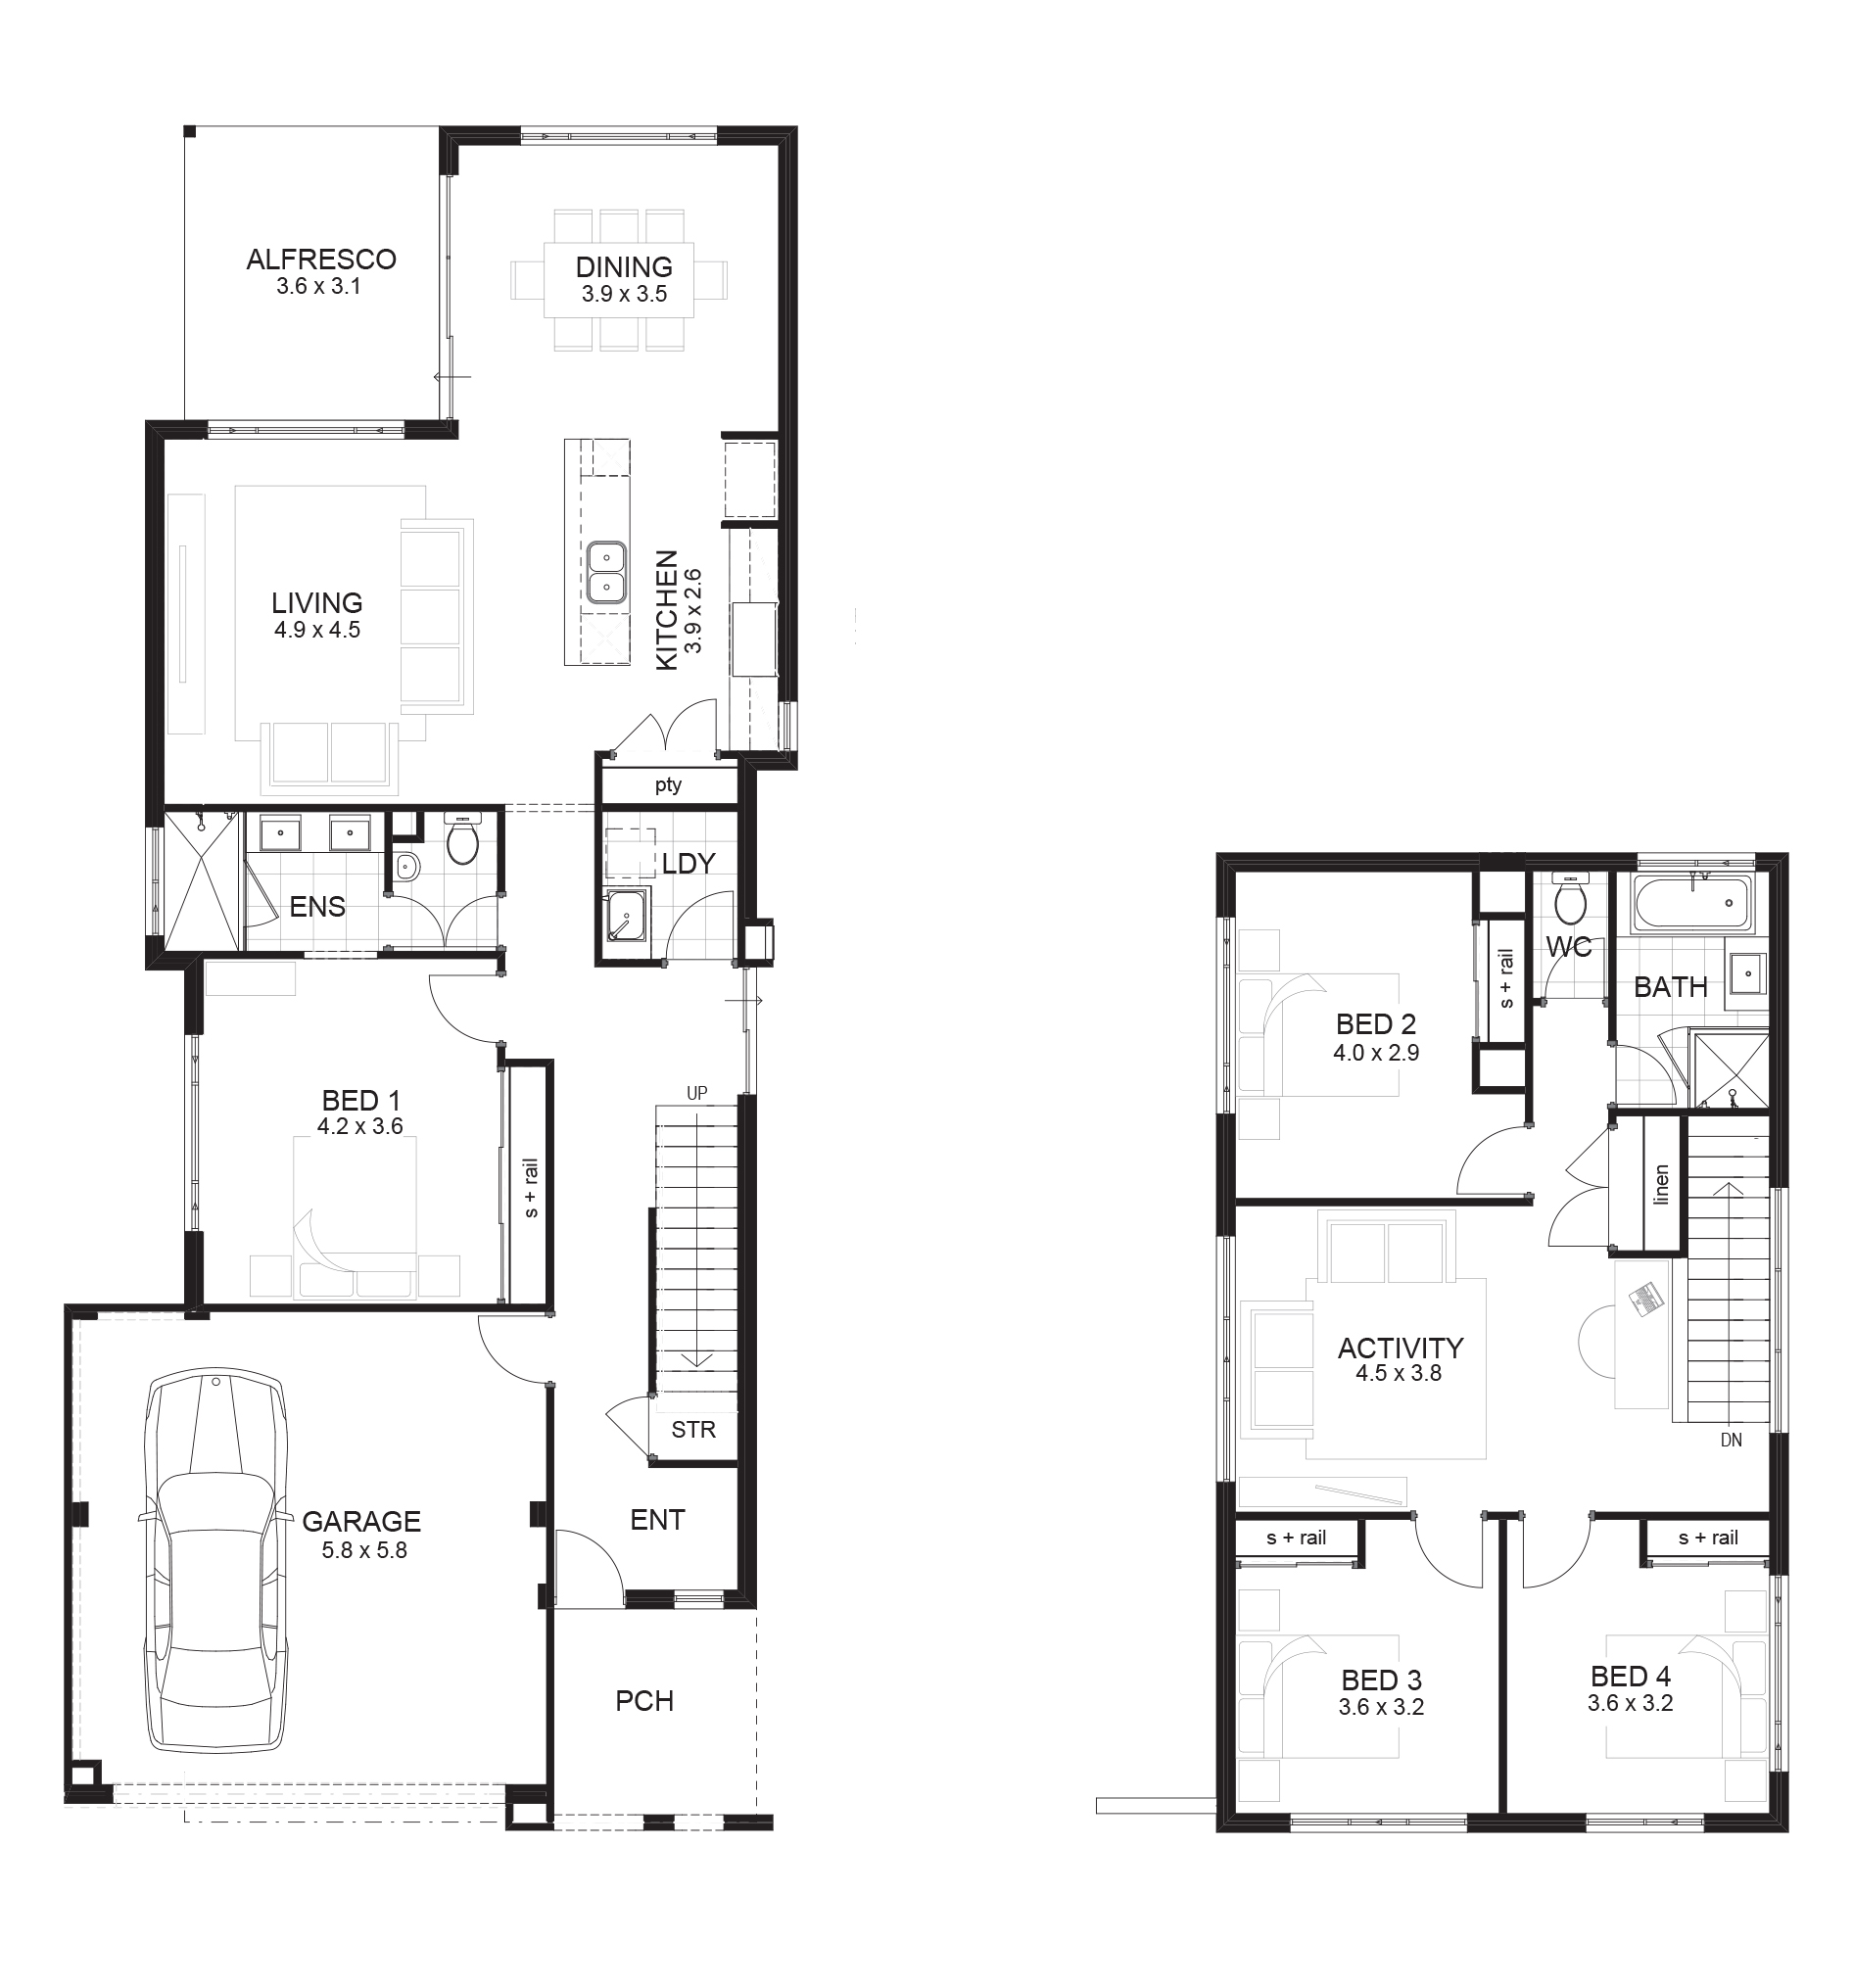 Small 4 bedroom house plans australia for 2 bedroom house plans australia